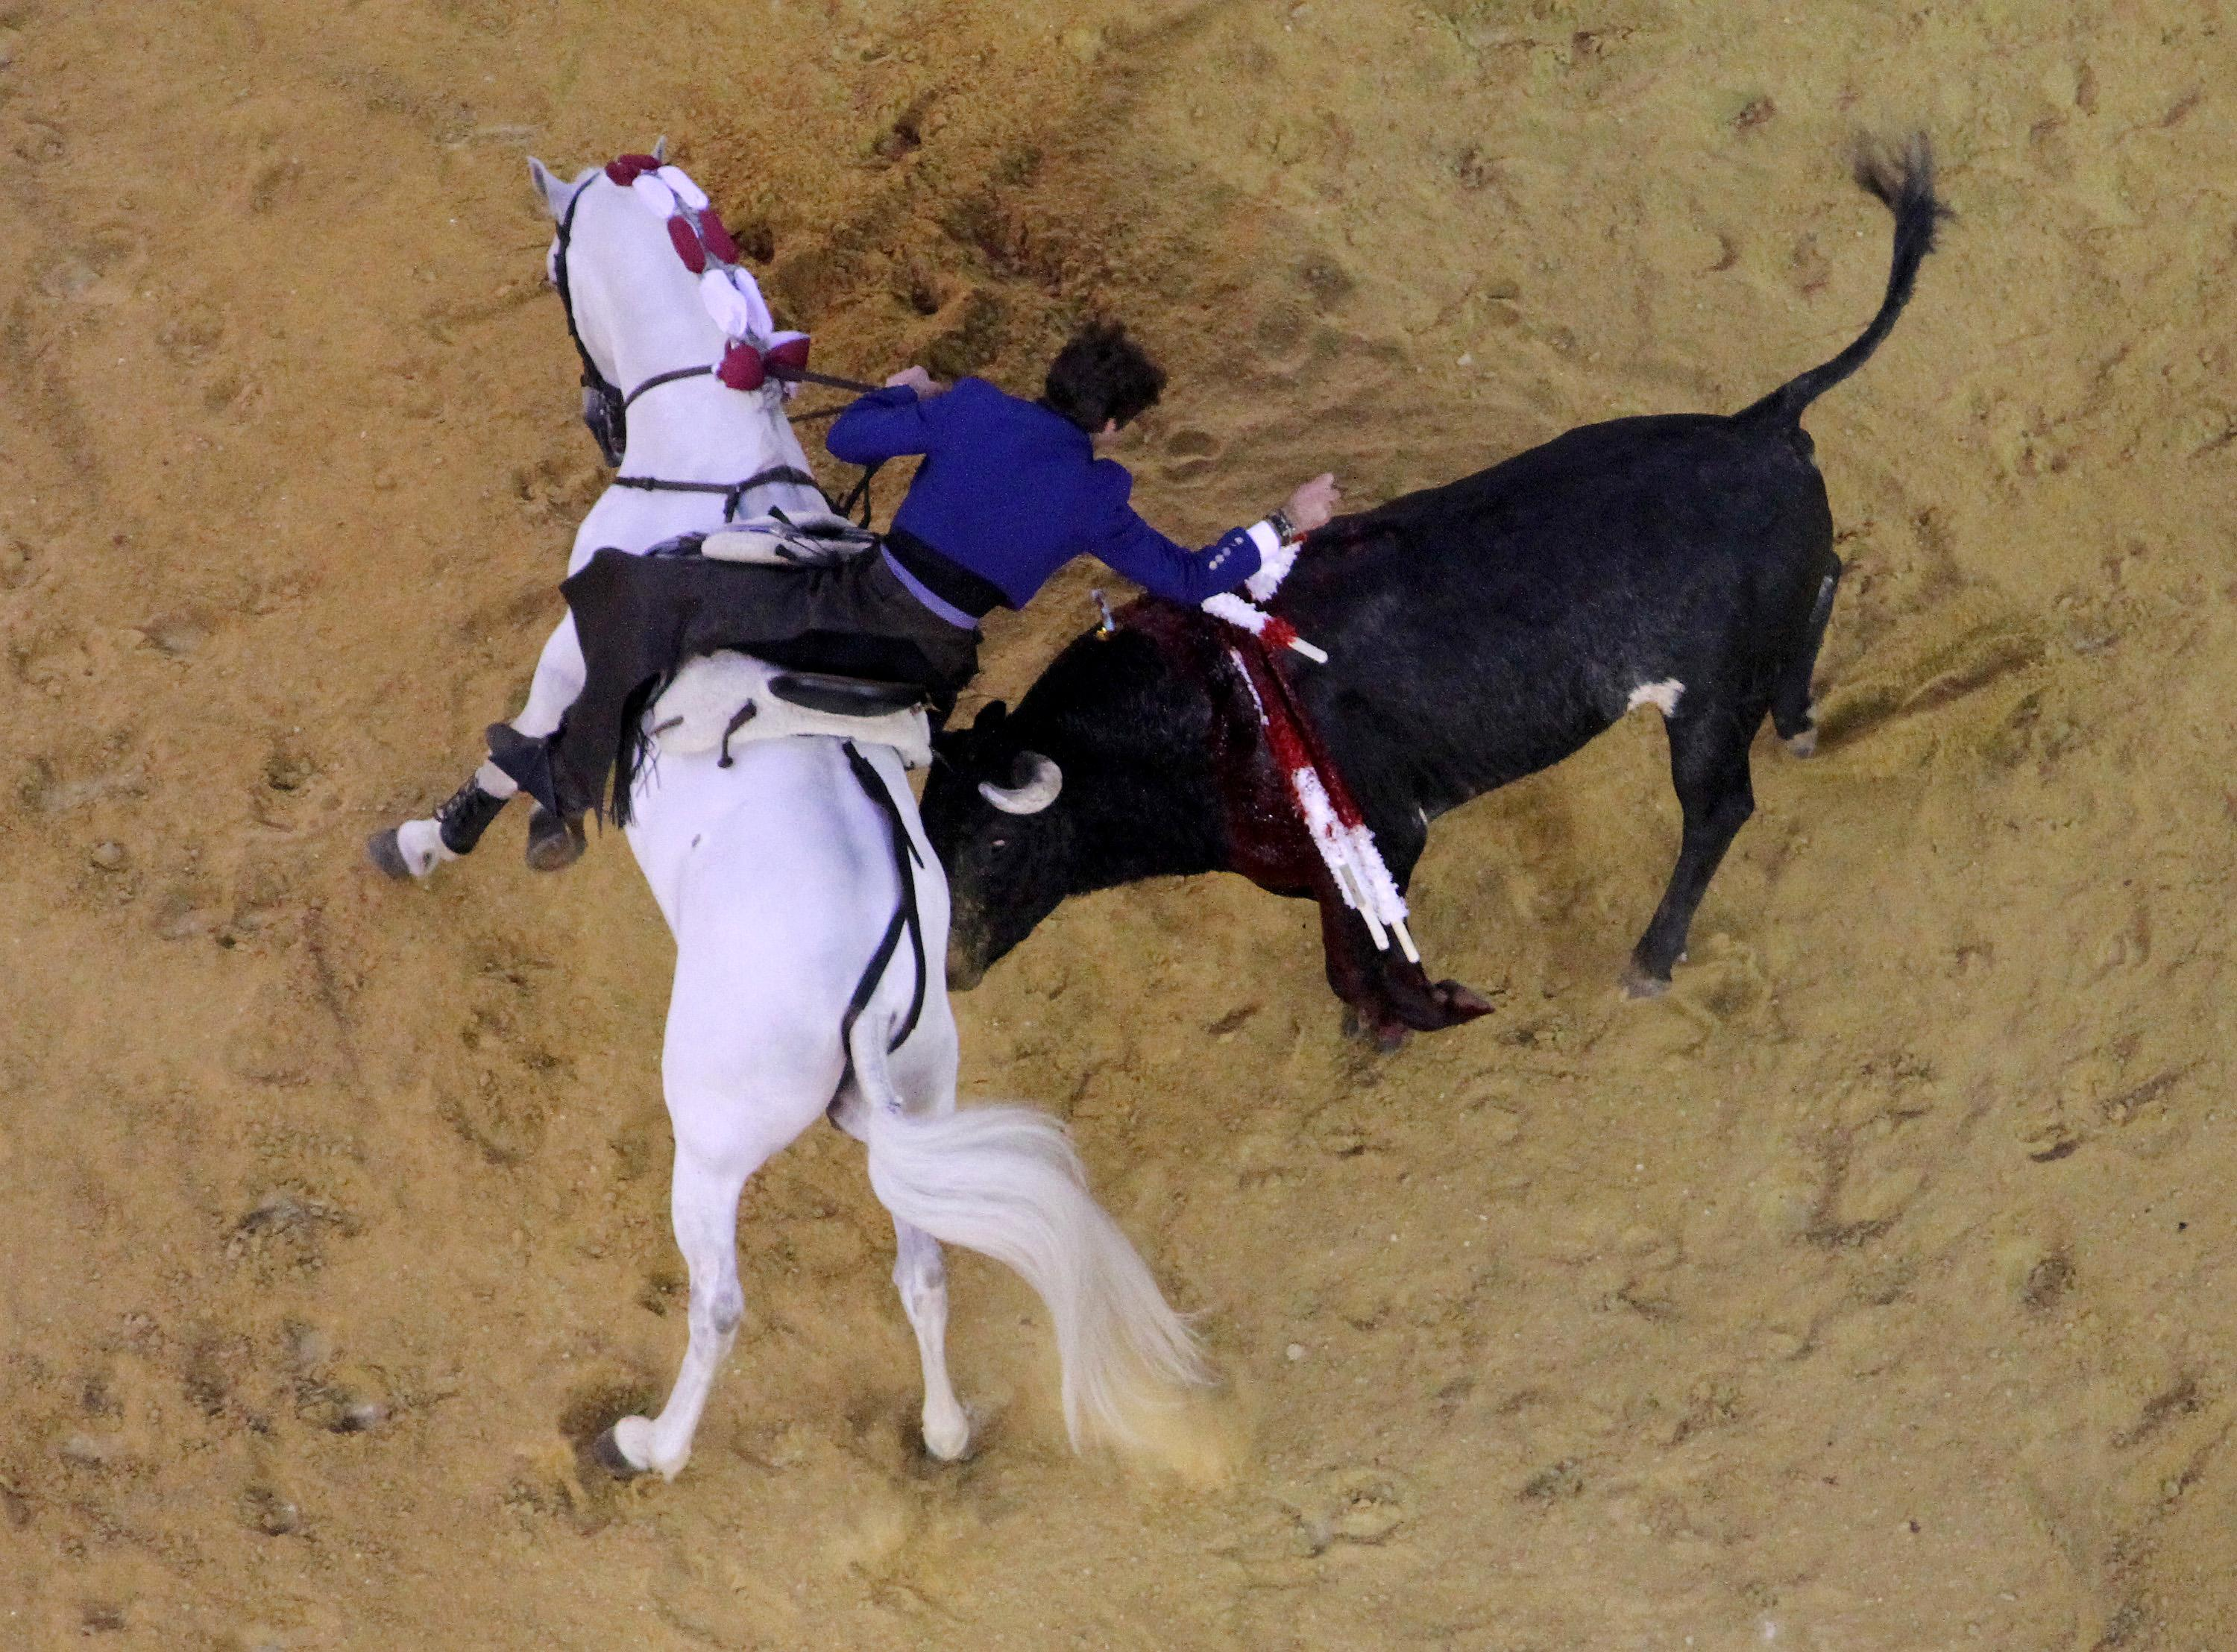 A mounted bullfighter performs during a bullfight at La Santamaria bullring in Bogota, Colombia, on January 23, 2011